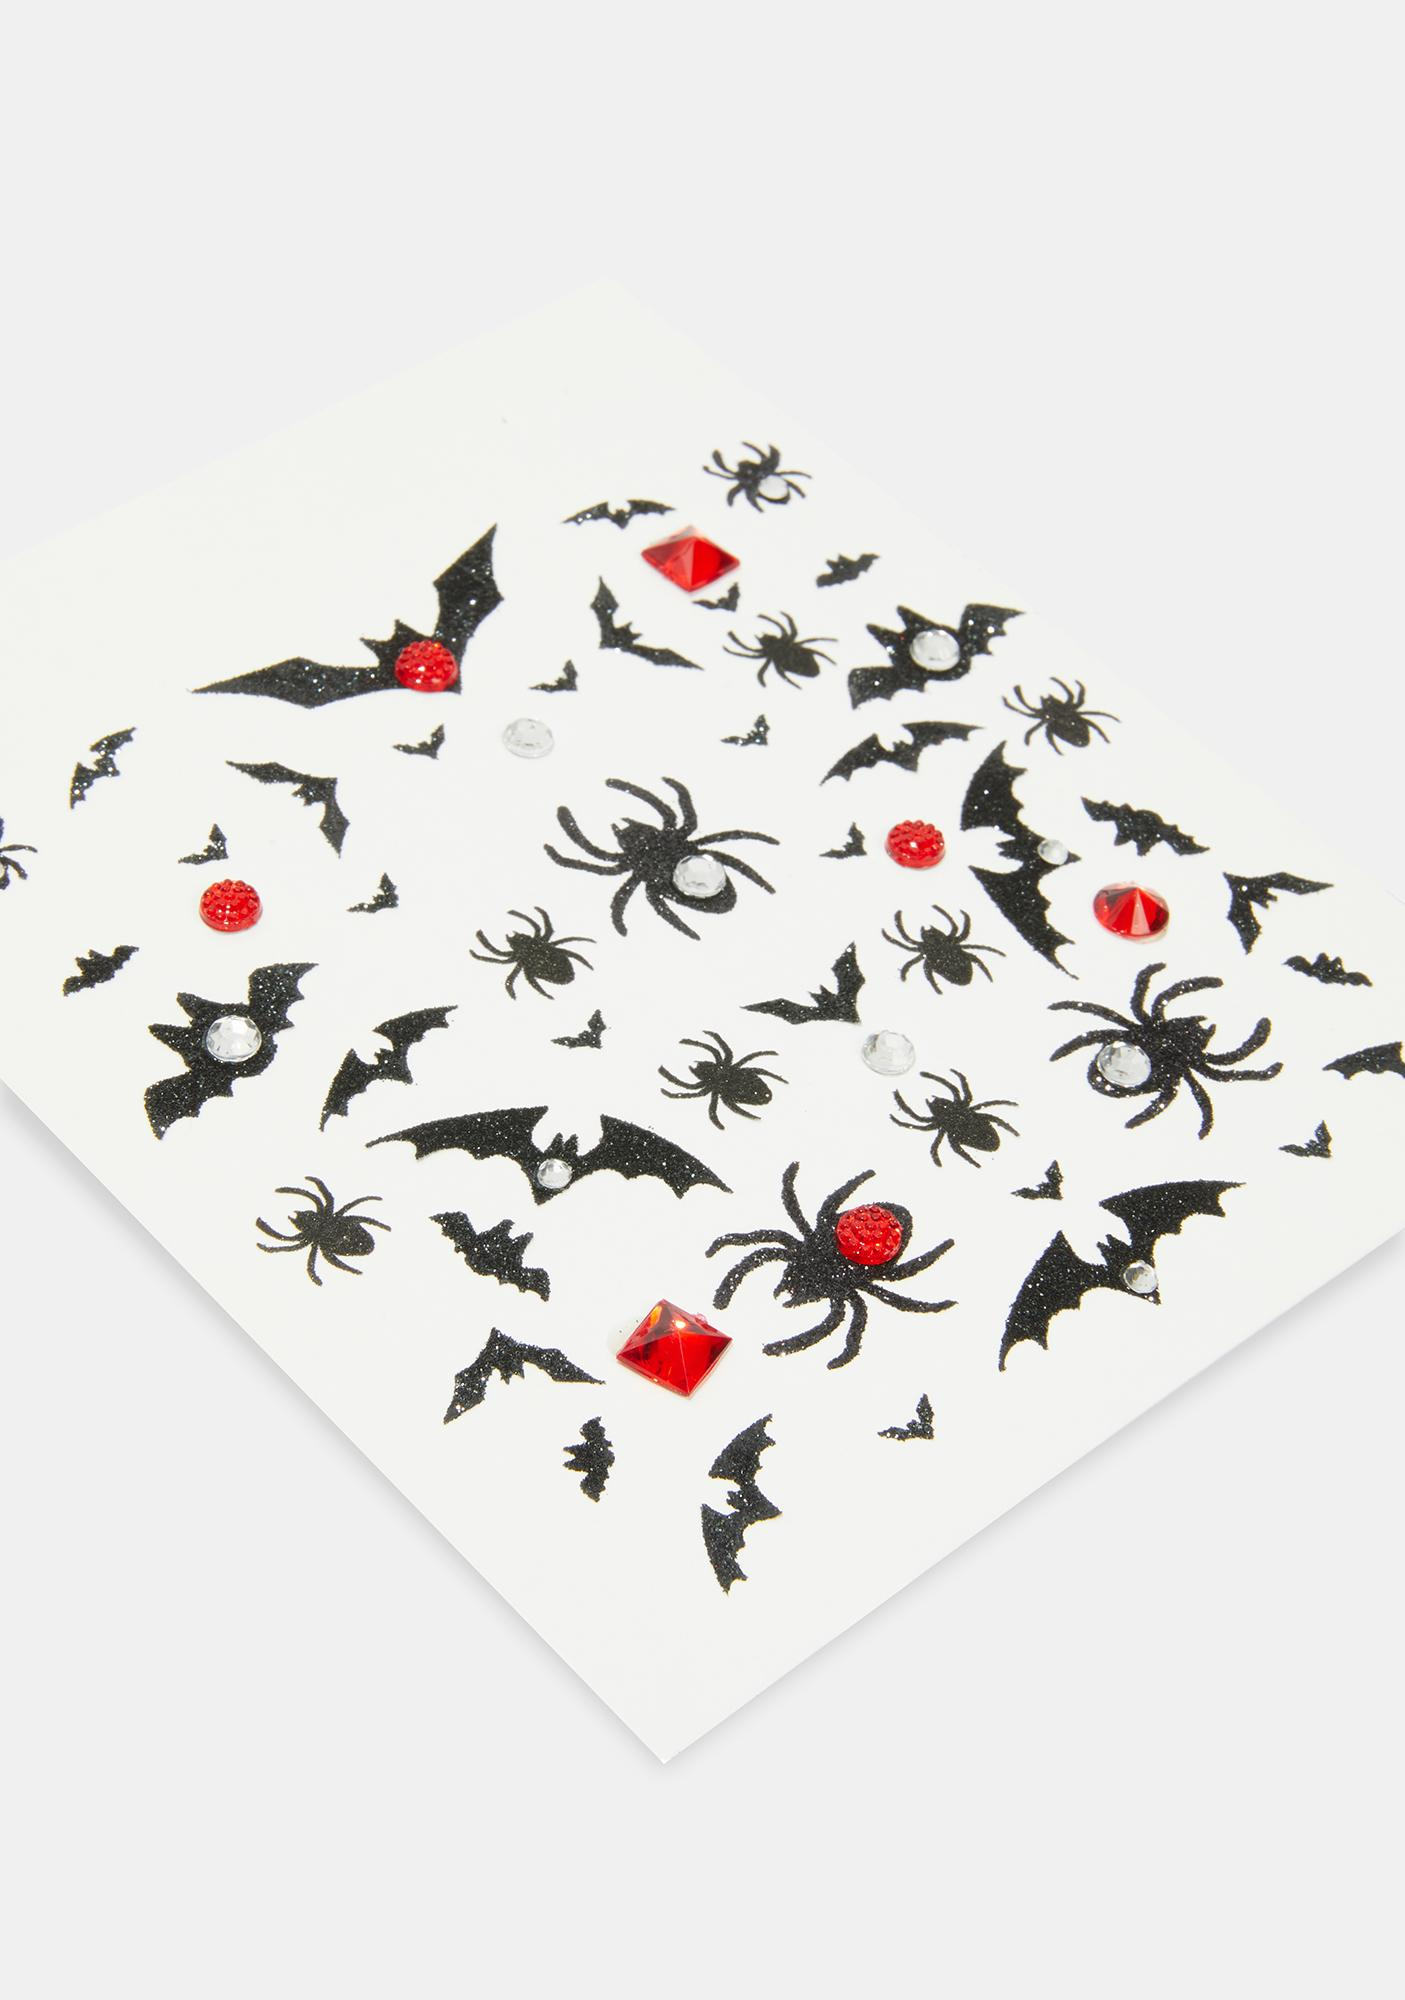 Creepy Crawlin' Spider Body Stickers